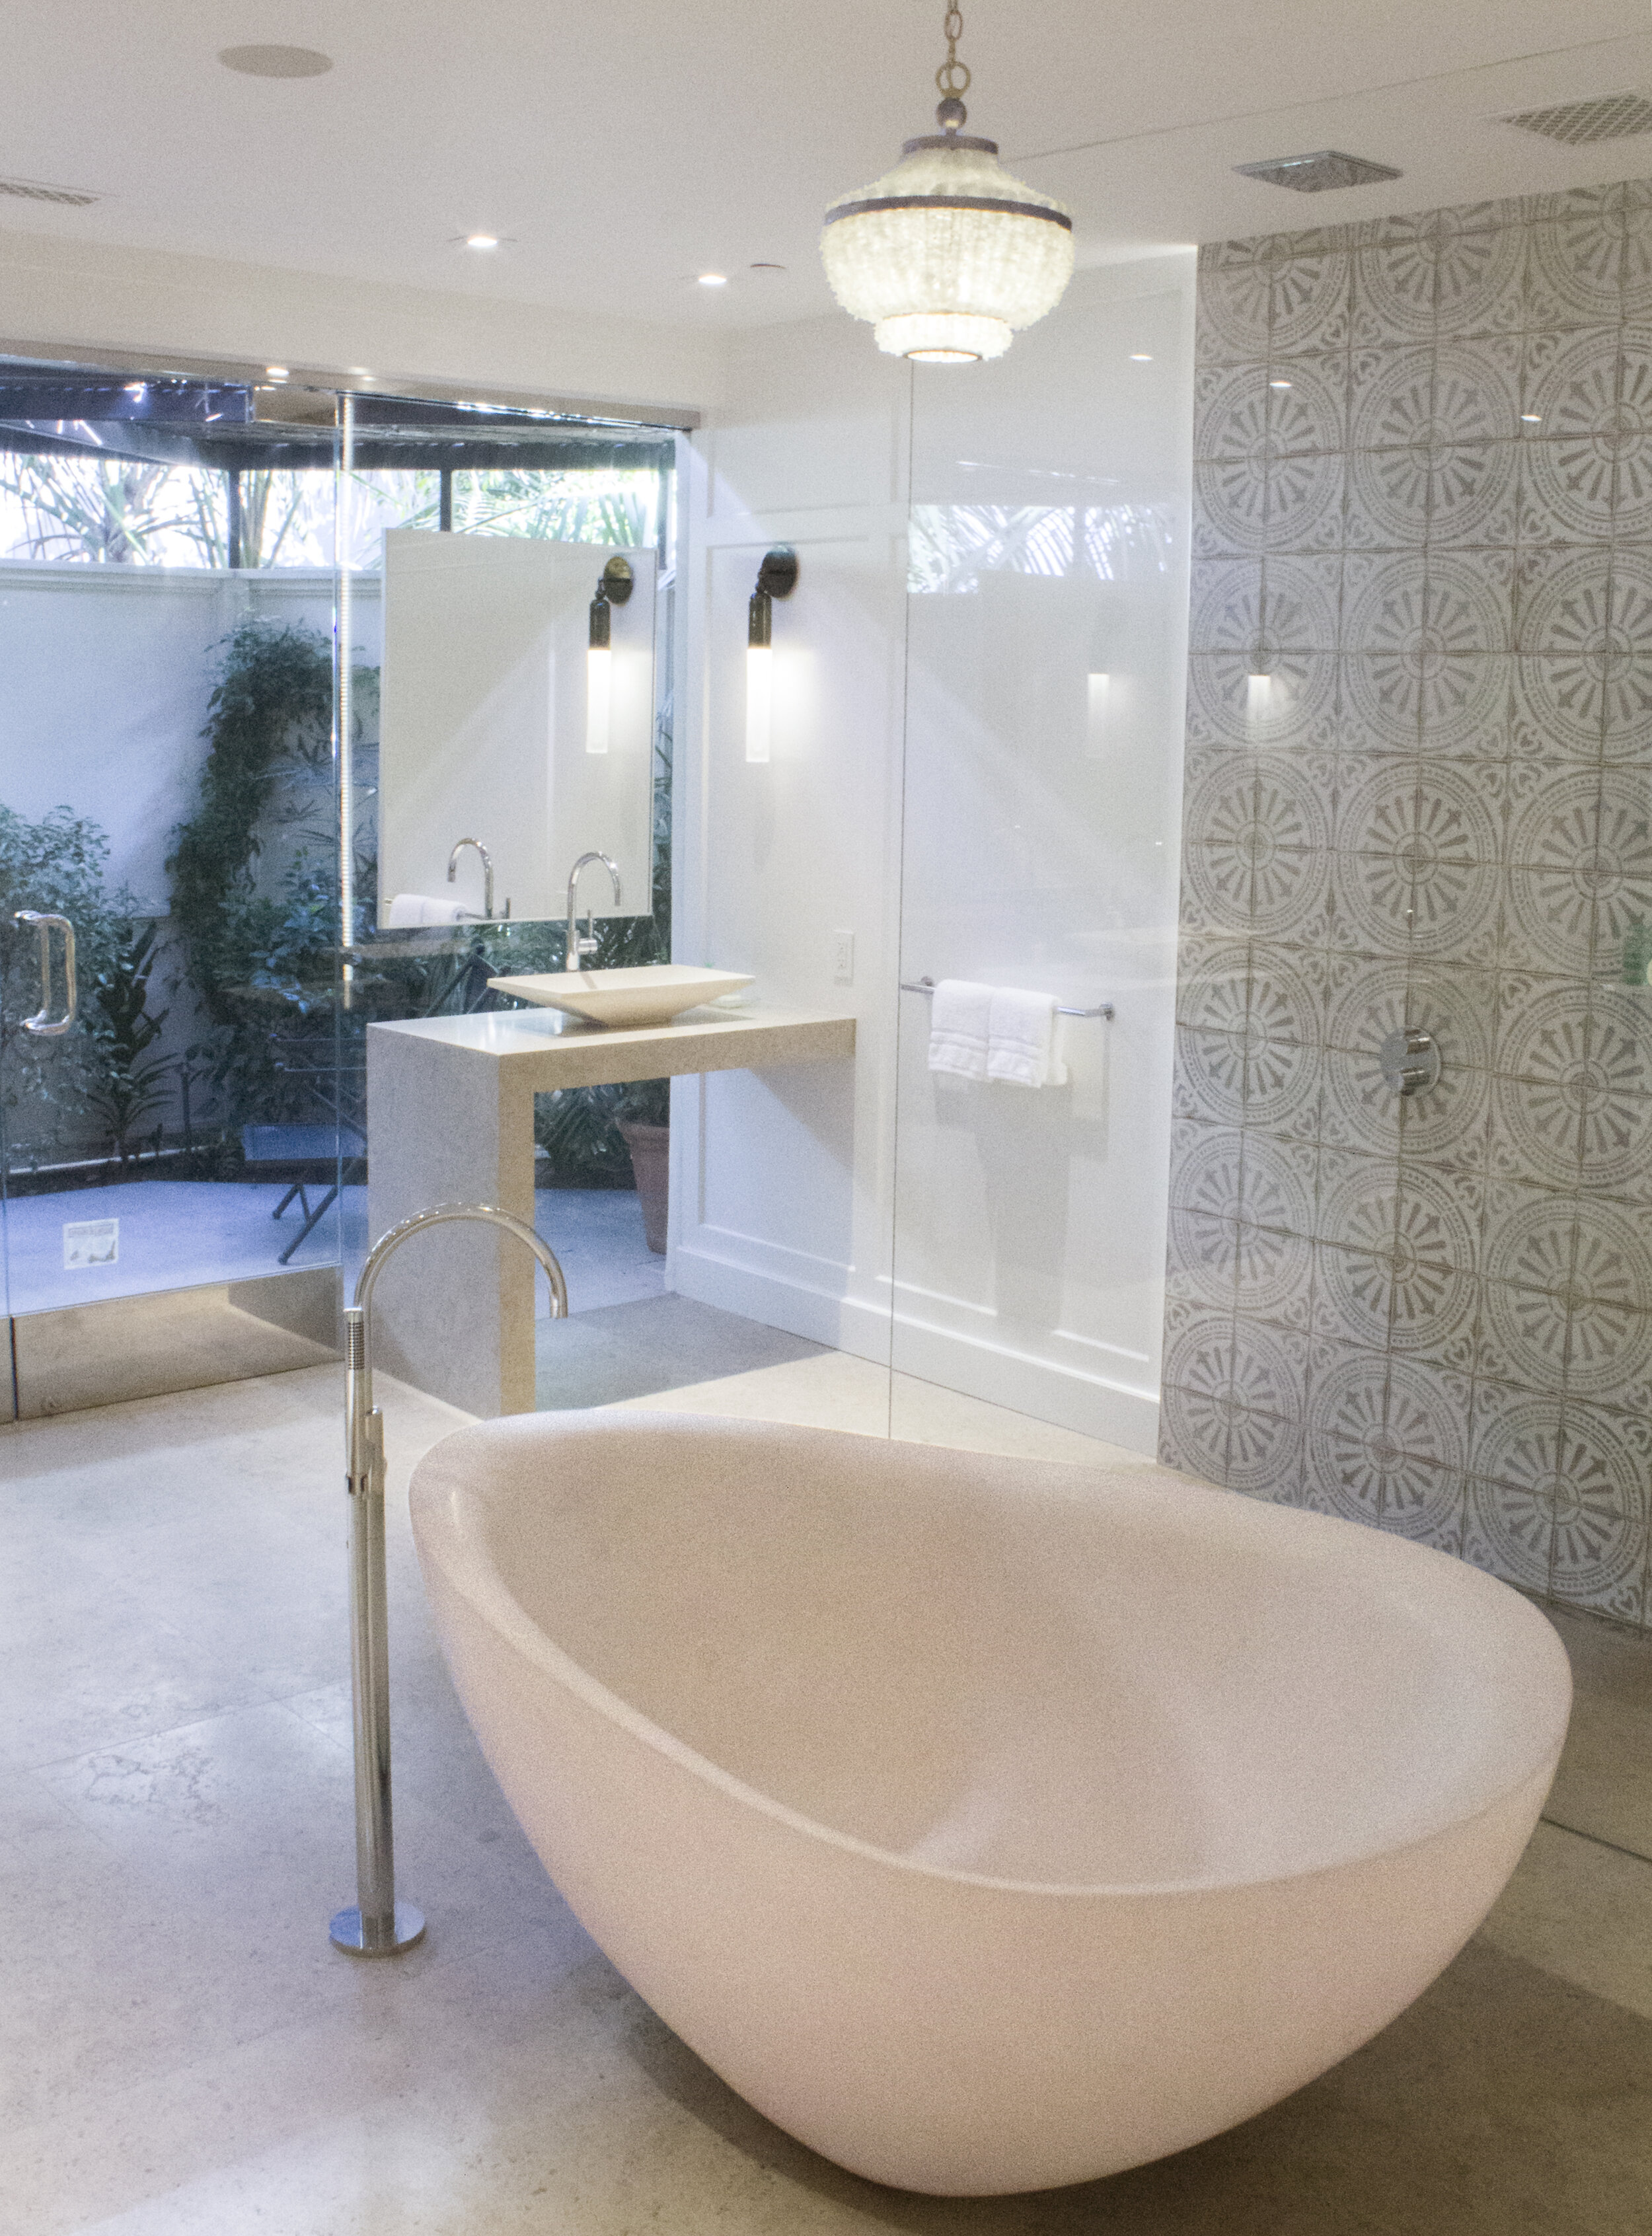 Free standing tub and walk through shower help to create and even more open feeling in this elegant bathroom.